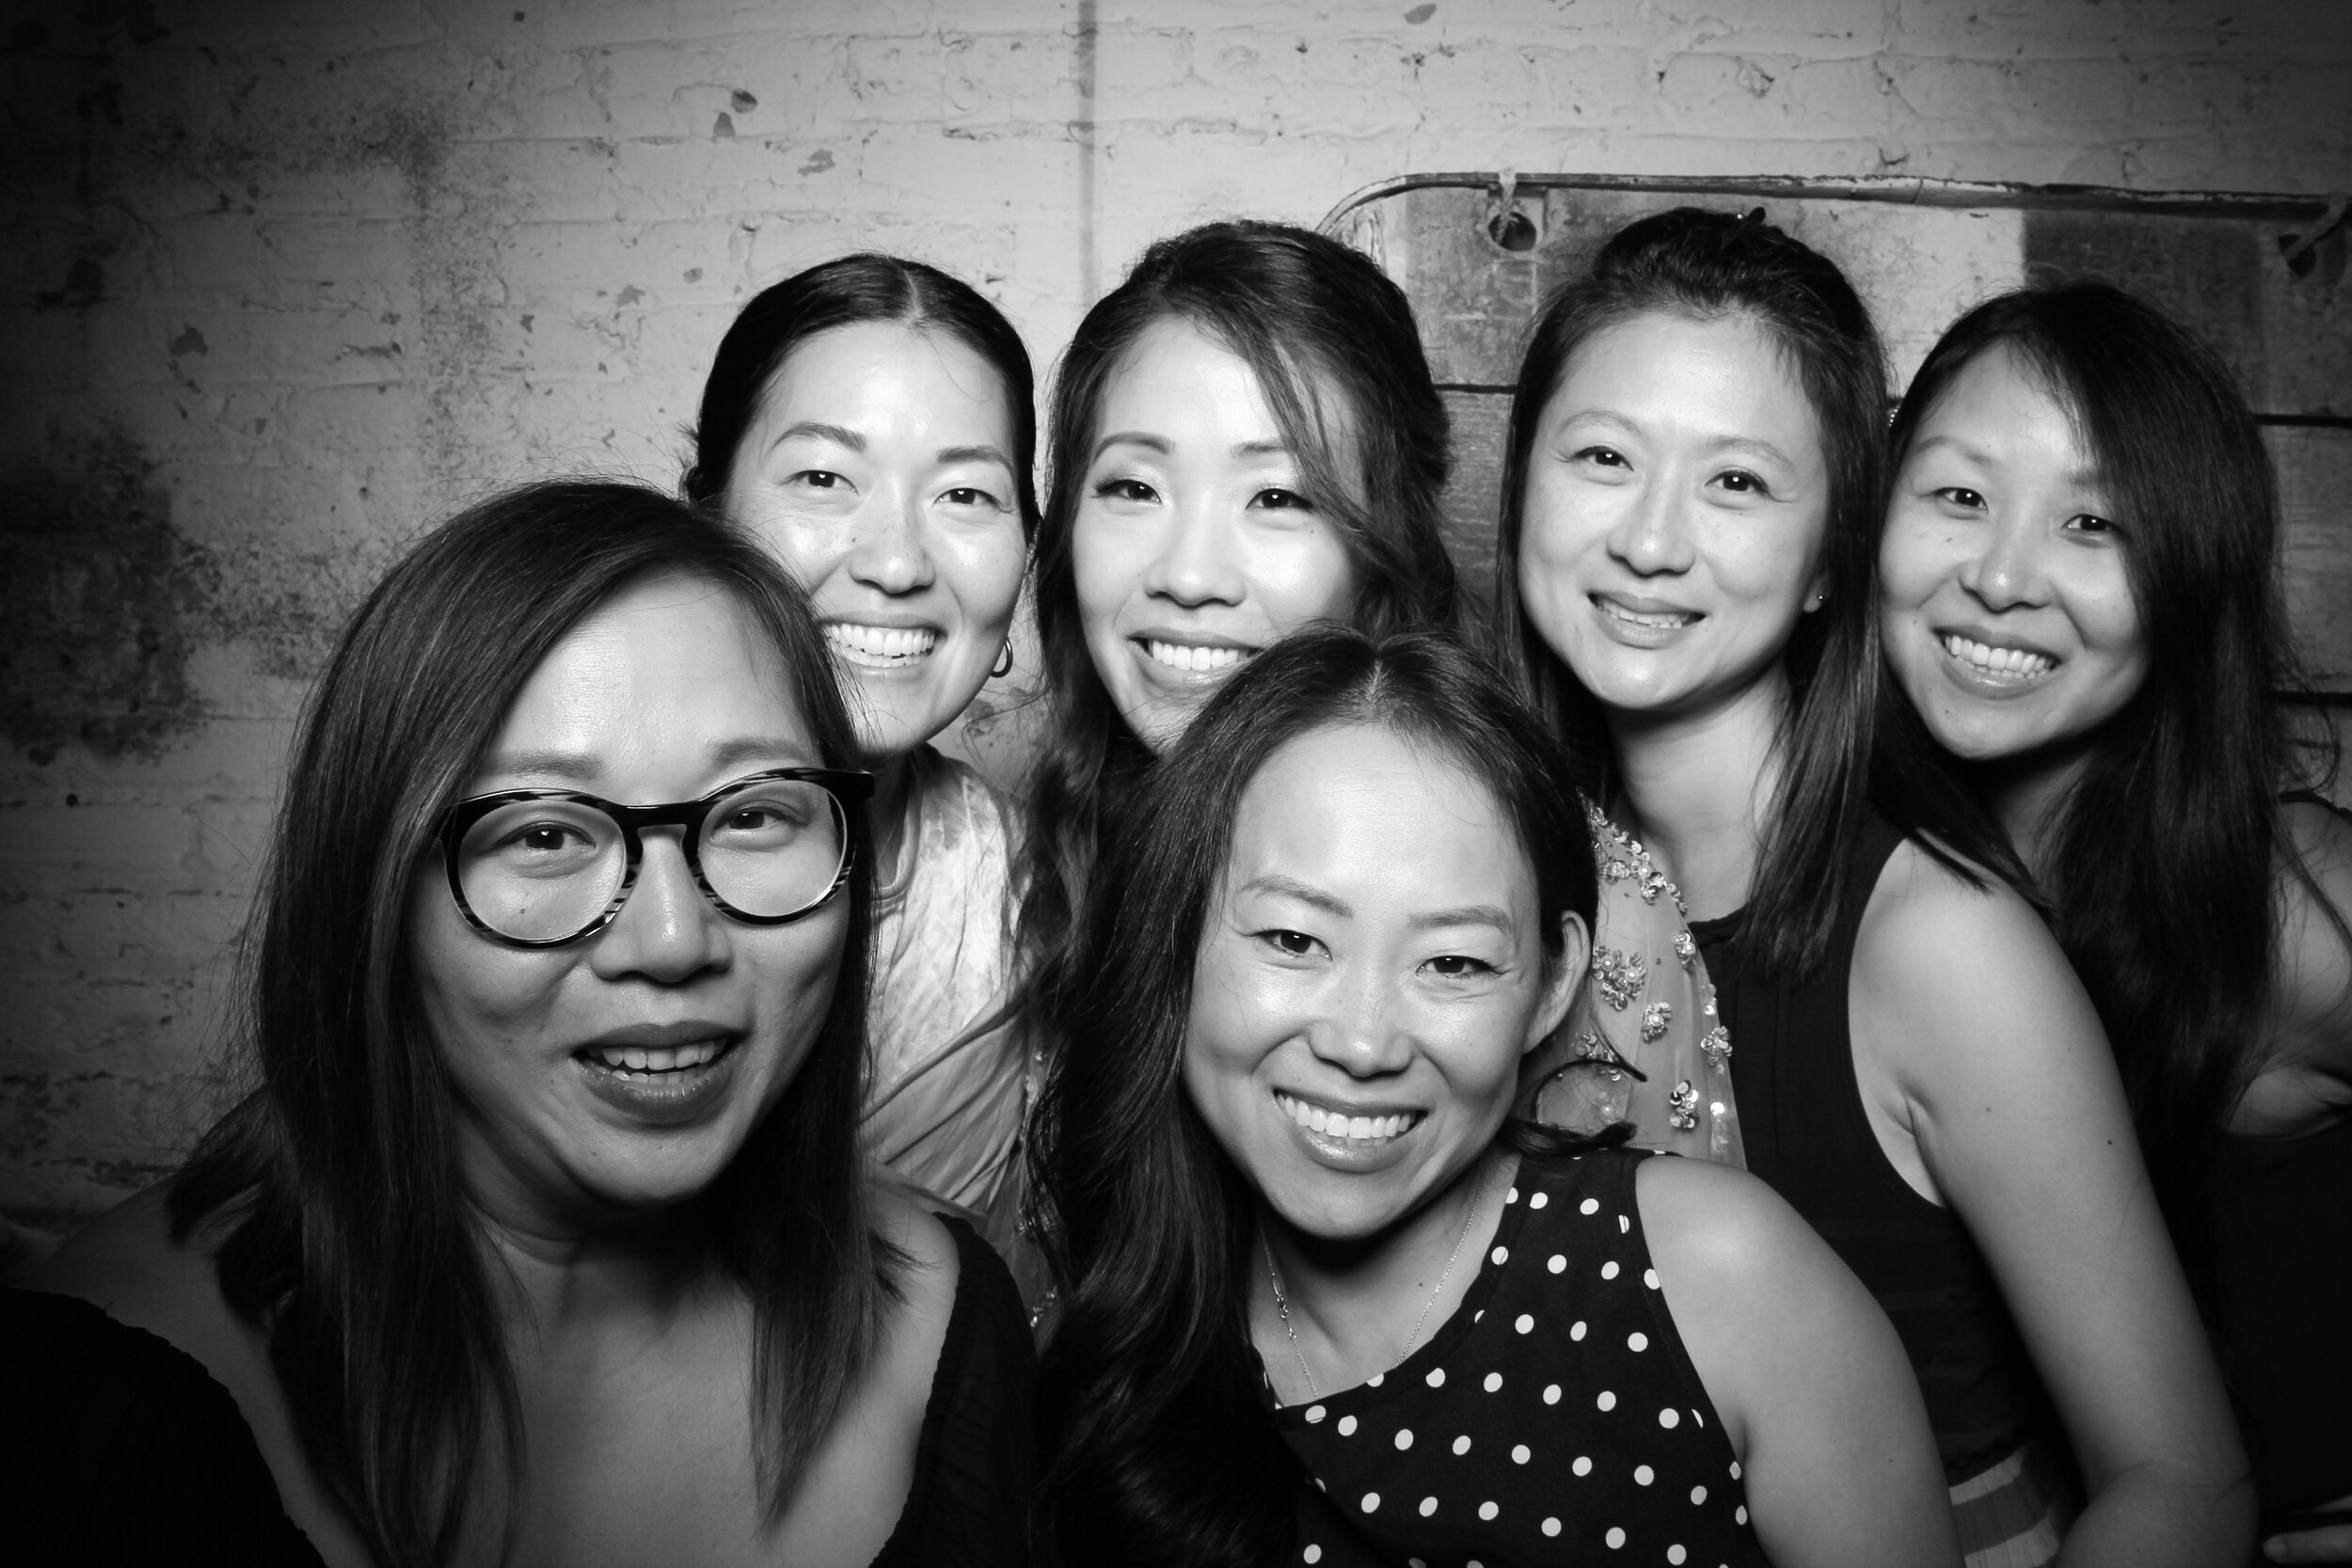 Chicago_Vintage_Wedding_Photobooth_Joinery_19.jpg